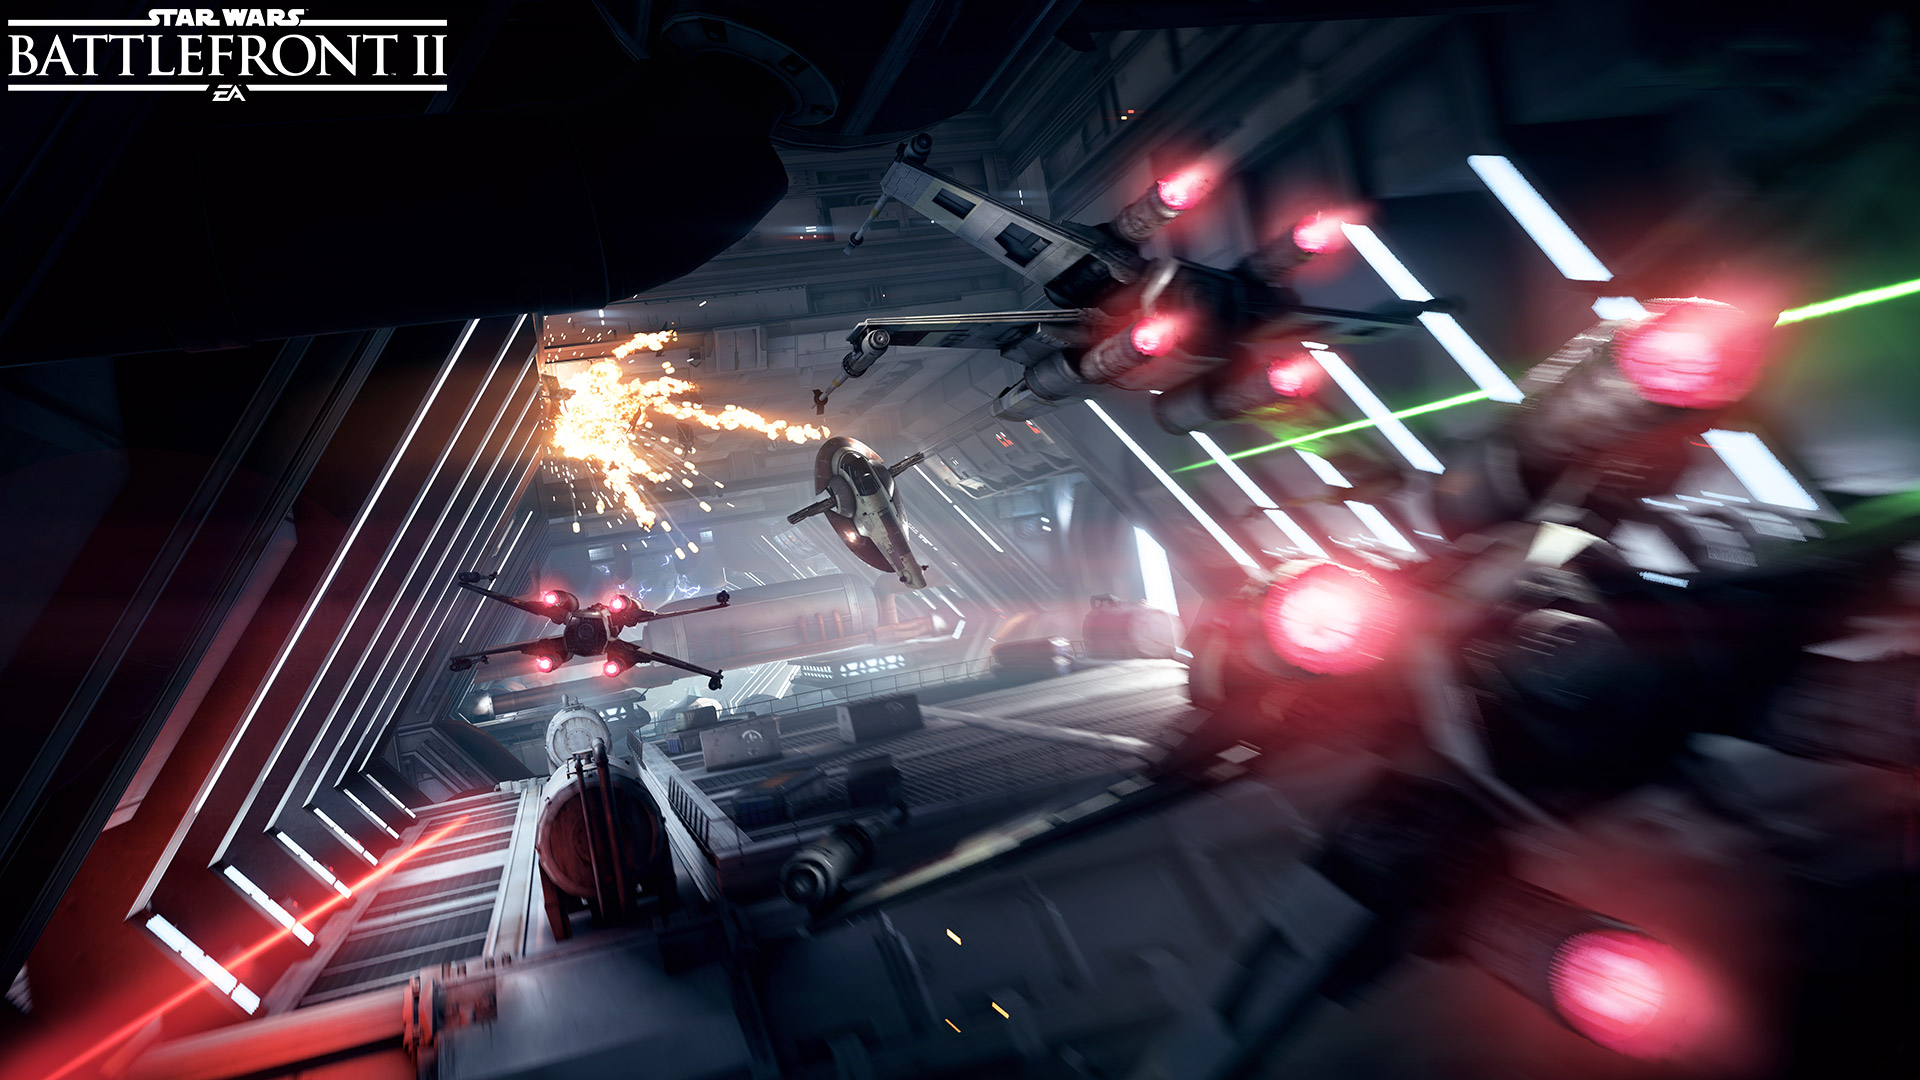 Star Wars Battlefront Ii Wallpaper Posted By Christopher Sellers